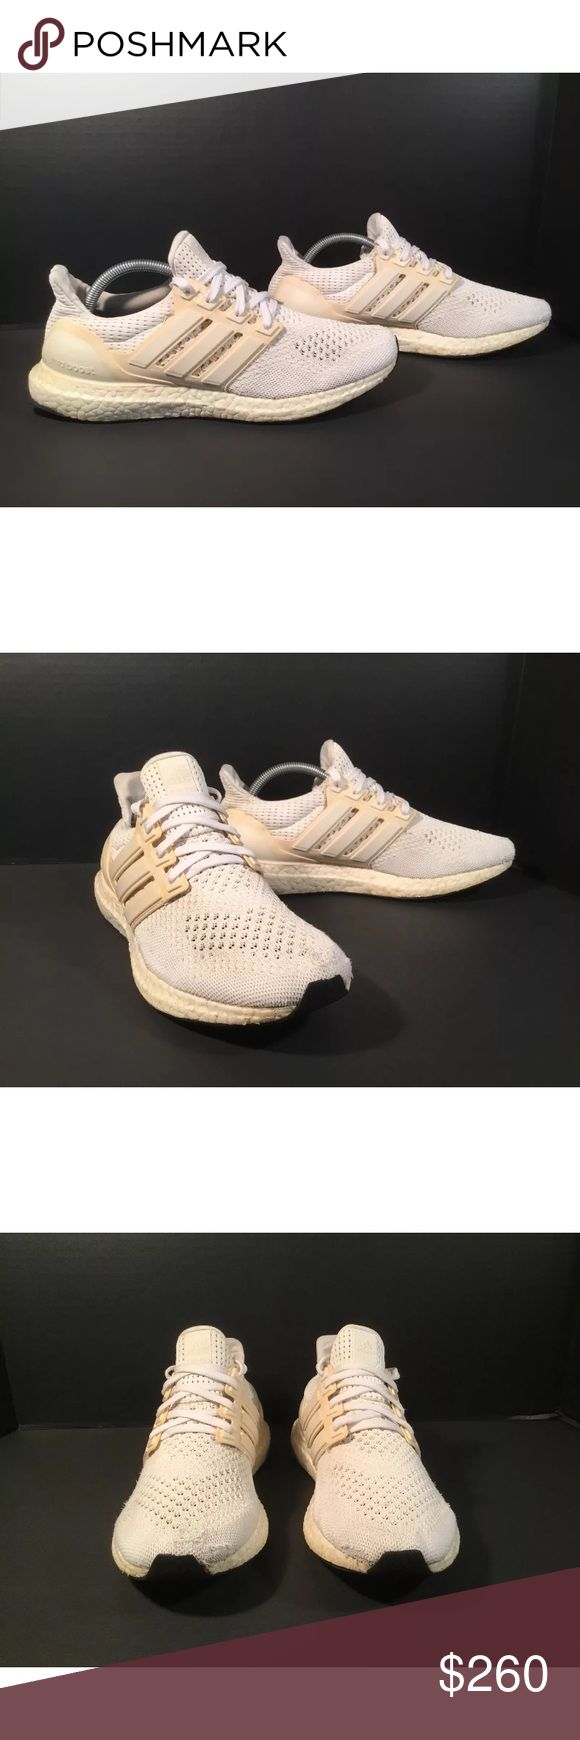 Sample adidas Ultra Boost 1.0 Item details:   -adidas brand  -in used condition, painted, discoloration, fraying and some wear, please refer to pictures  -sample ultra boost 1.0  -Size 9  -no insoles   All my shoes are 100% authentic. Buyer satisfaction is very important to me and I will always do my best to make sure you have a good experience when purchasing my items. I sell many hard to find, past season, and popular shoes at discount prices. If I have the box for the shoes, I always…